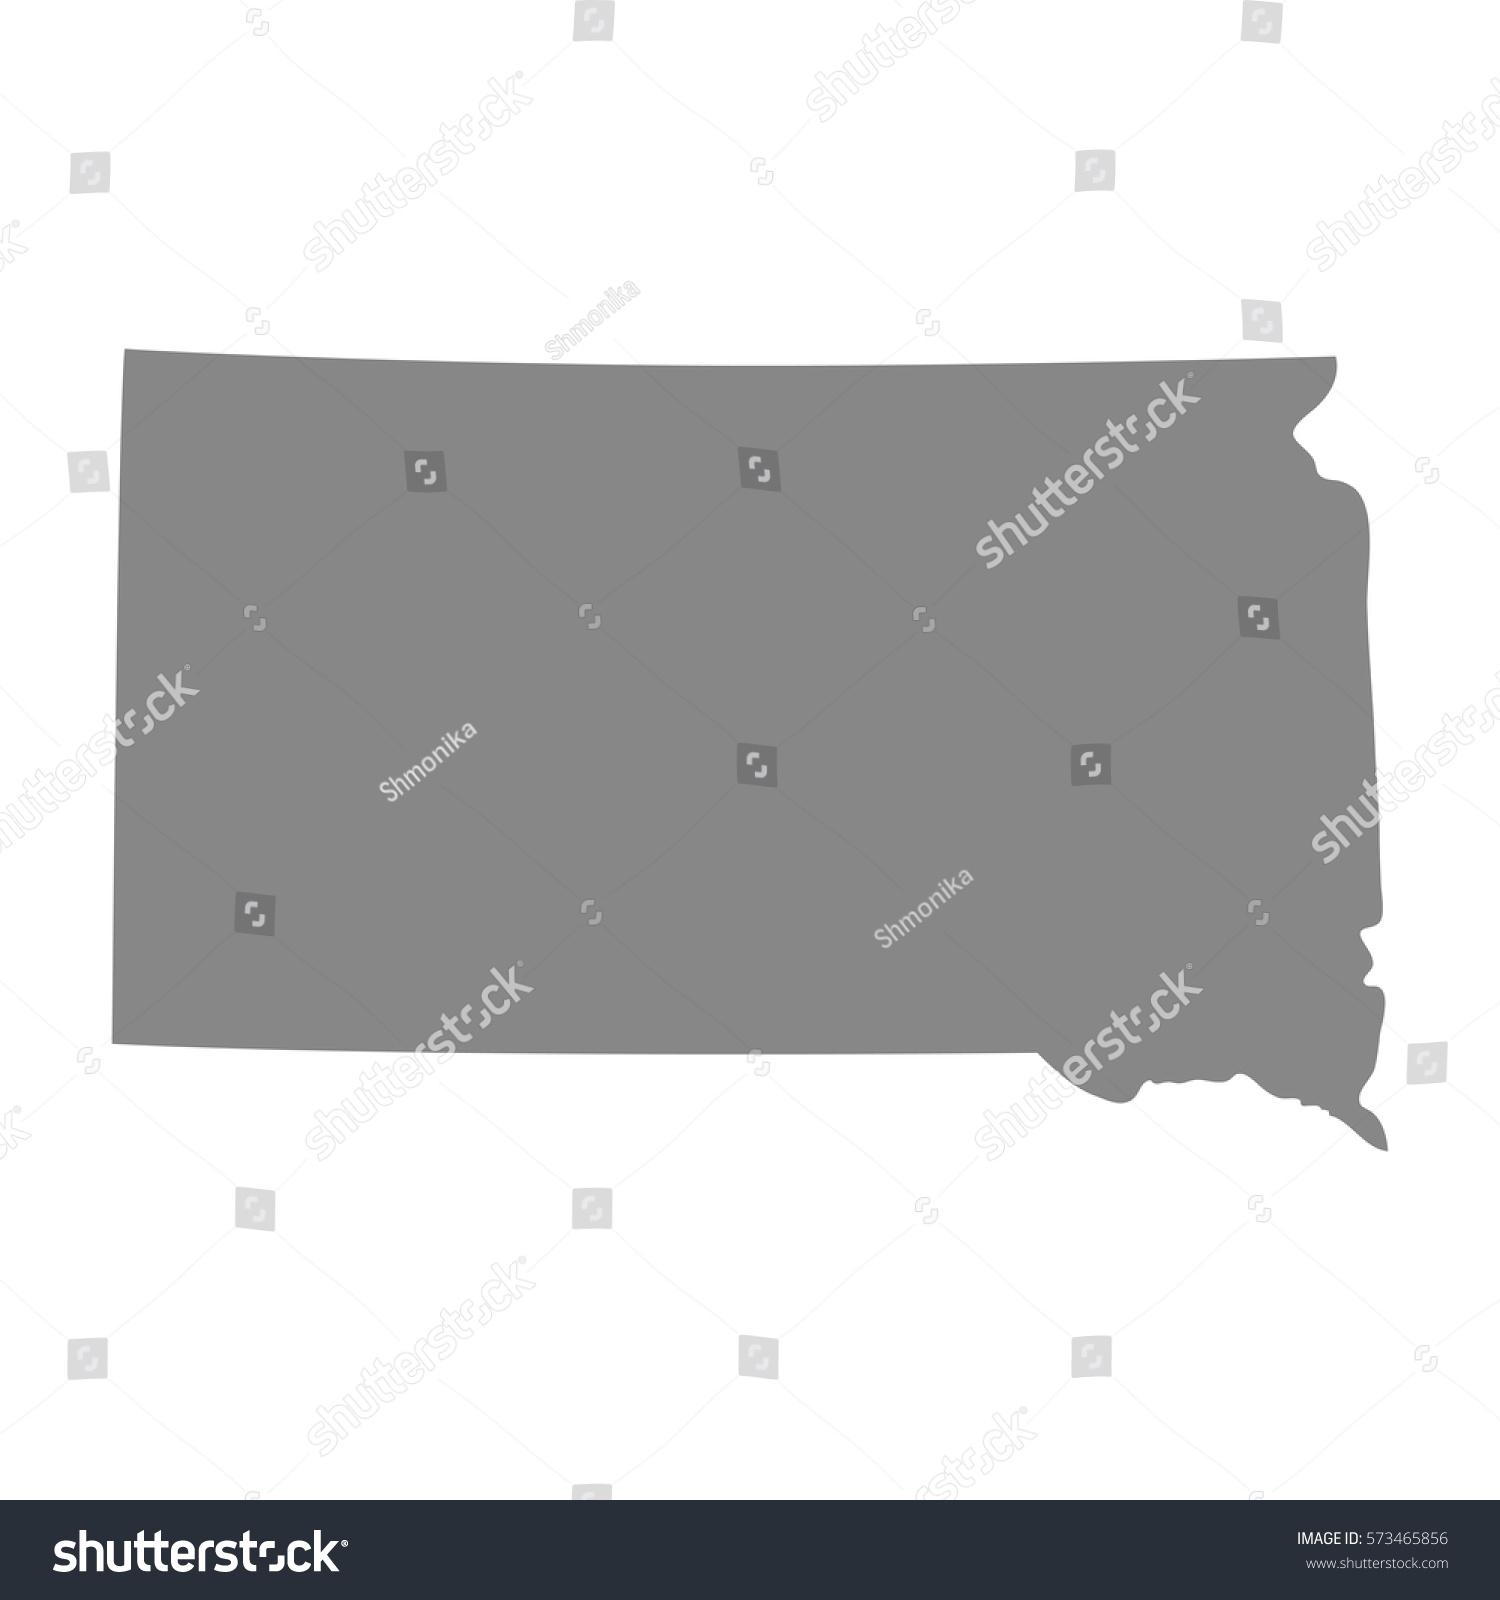 Map Us State South Dakota Vector Stock Vector 573465856 Shutterstock